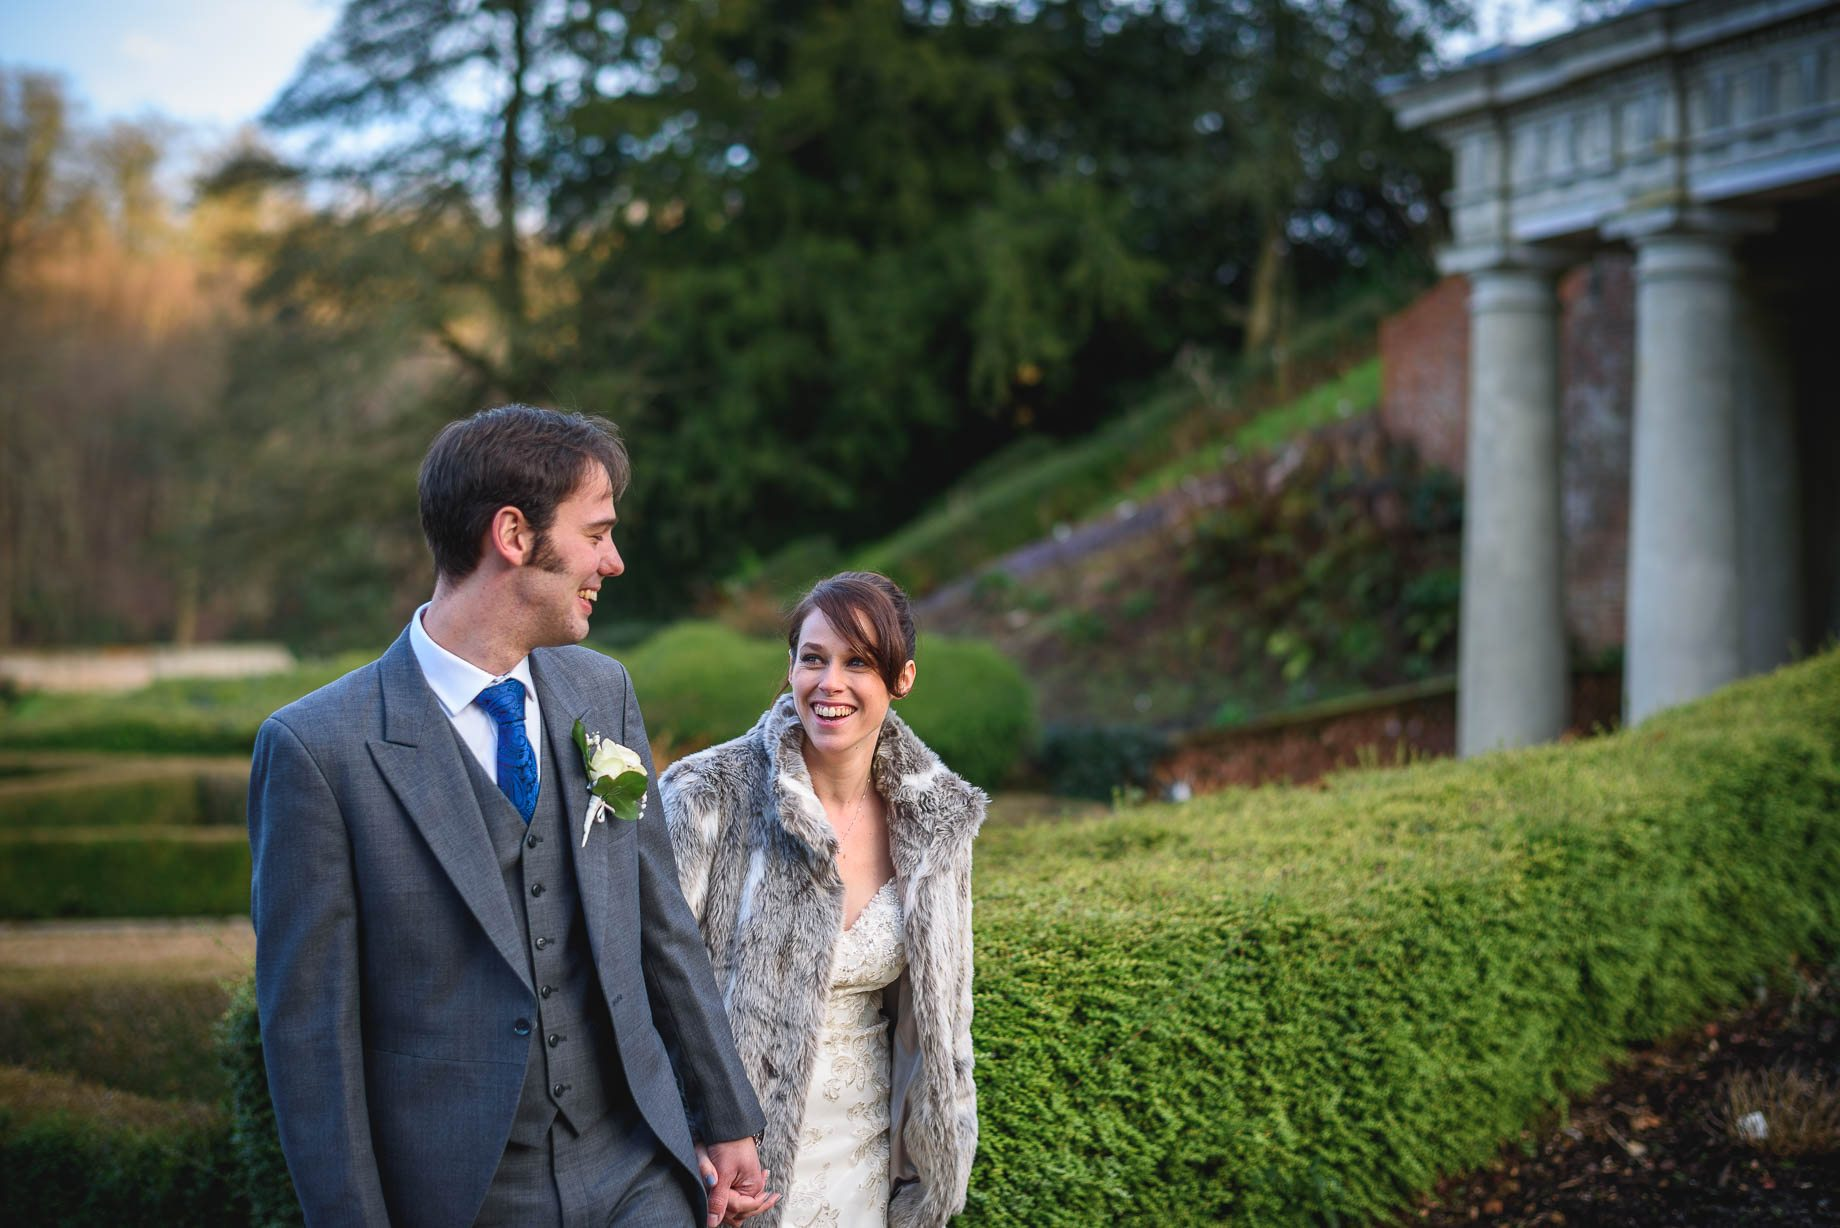 Surrey Wedding Photography - Emily and Pete by Guy Collier Photography (103 of 171)